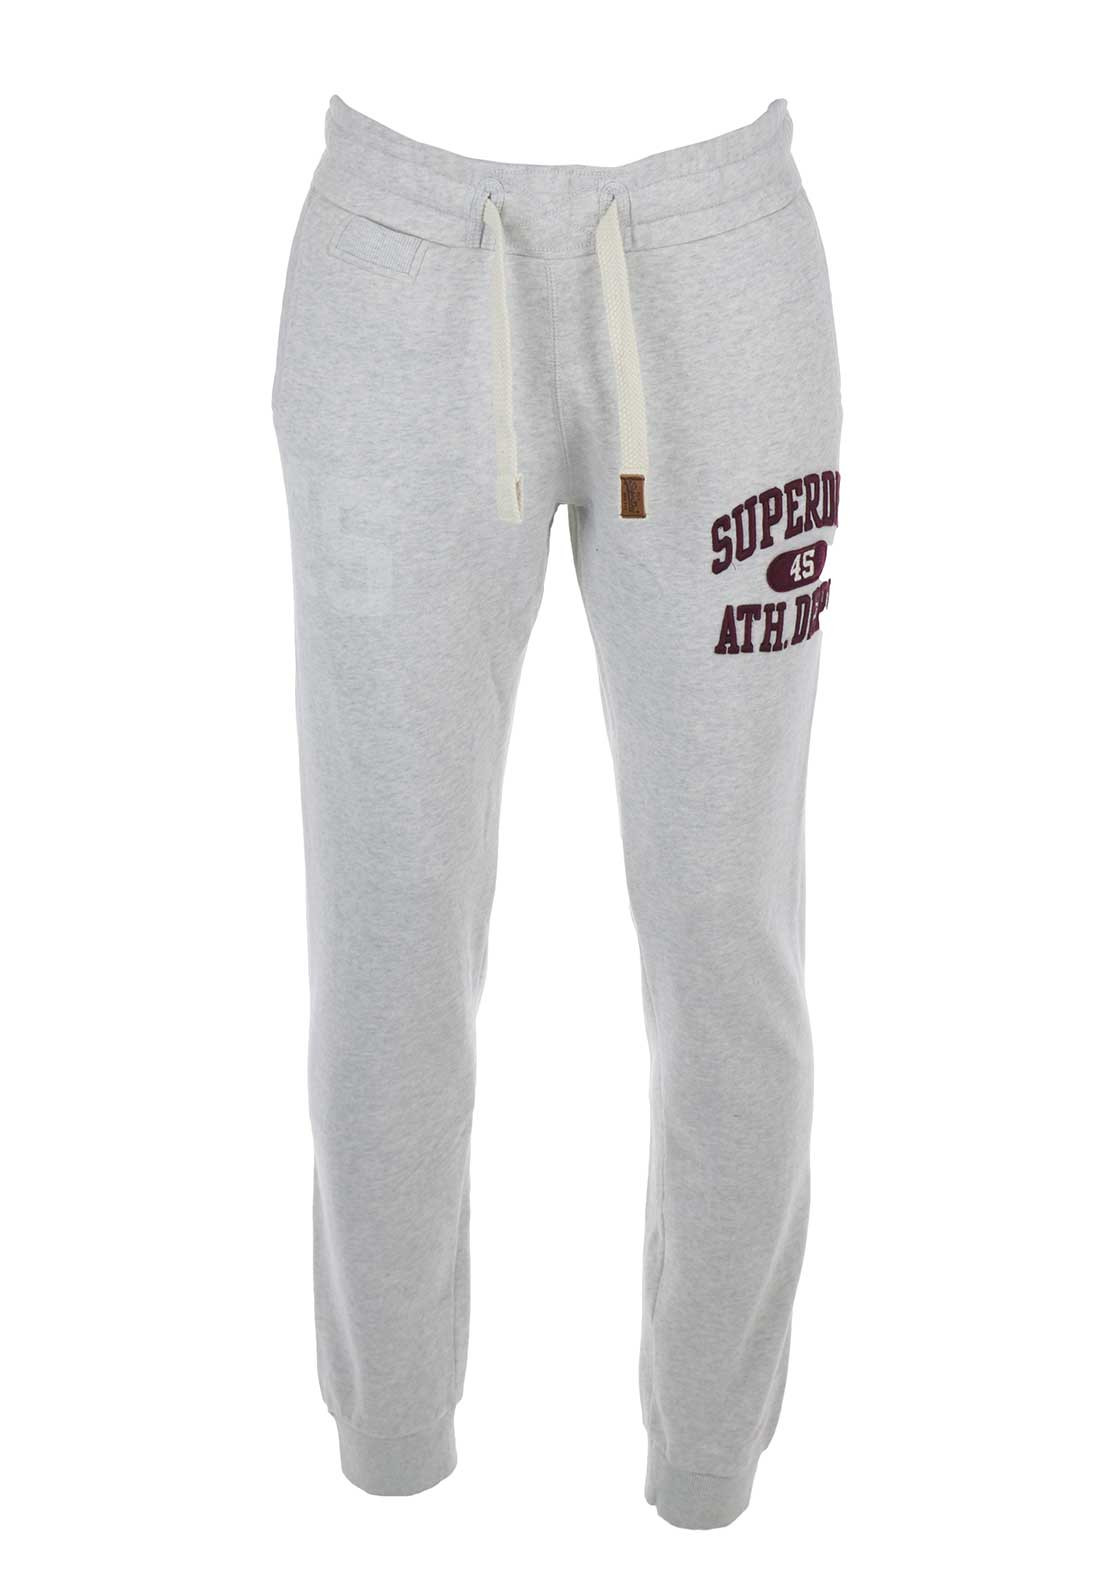 Superdry Mens Core Applique Tracksuit Bottoms, Grey